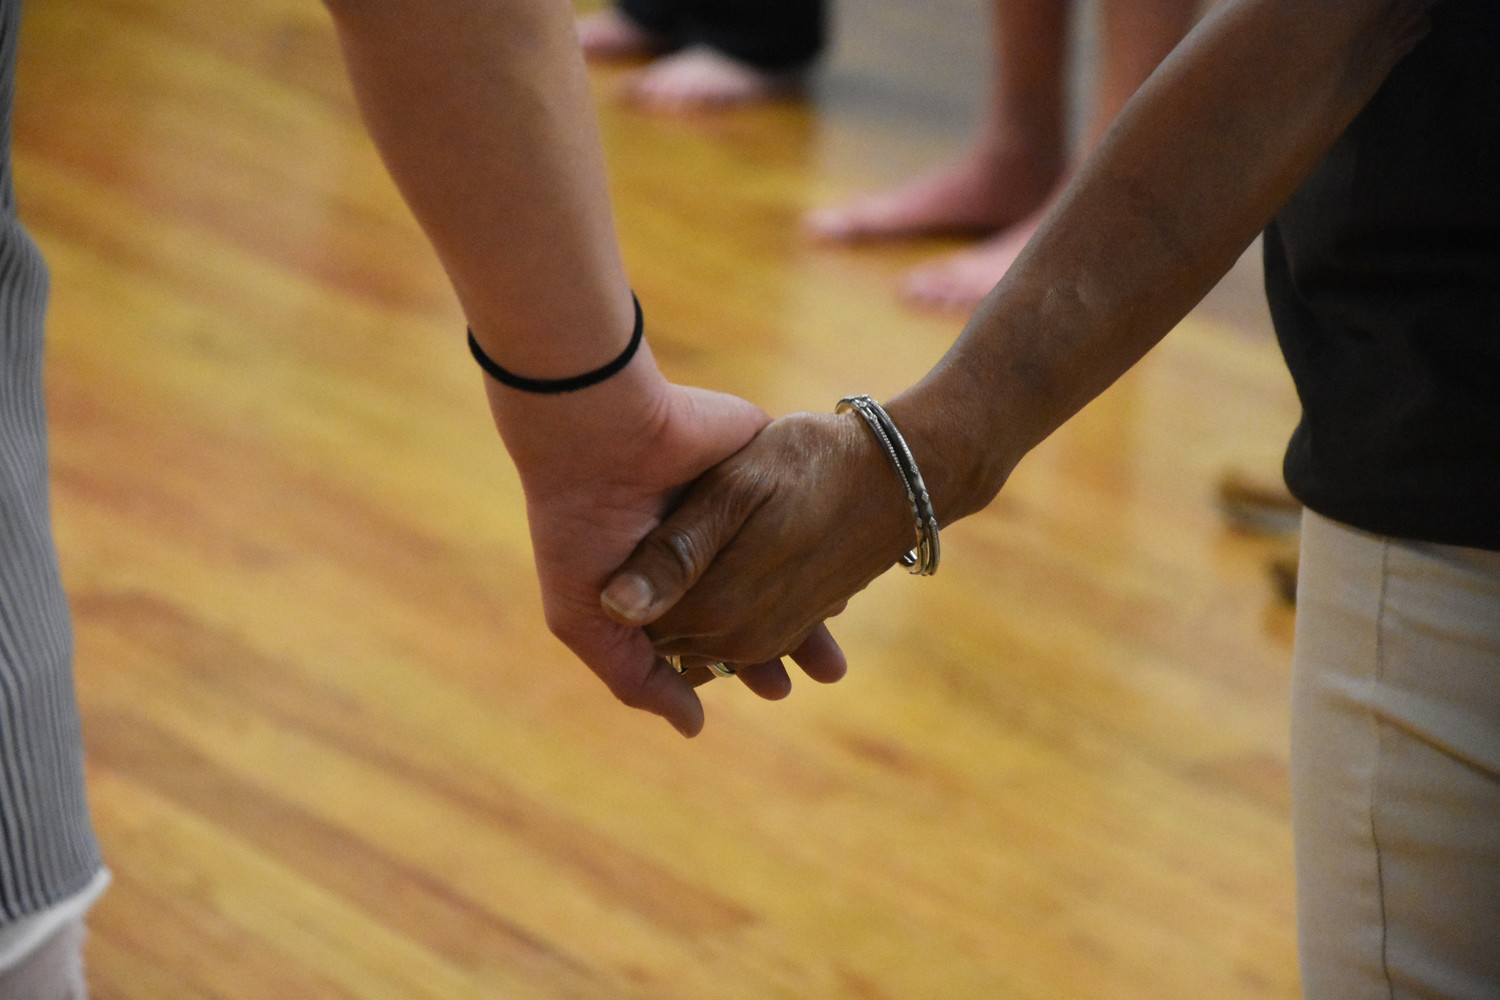 The dancers held hands with friends and strangers.